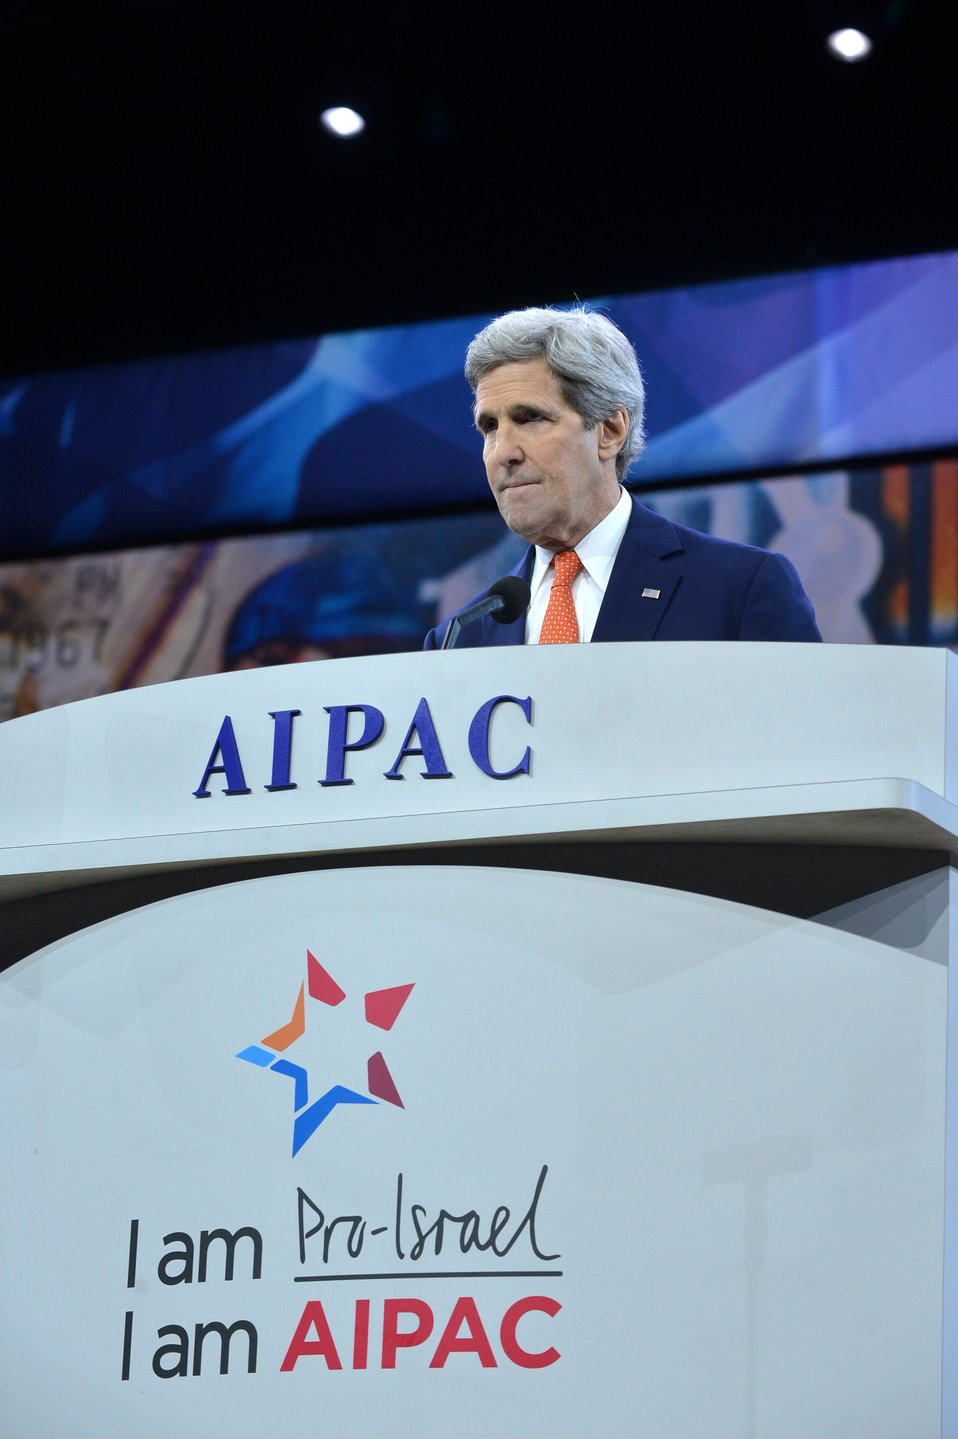 Secretary Kerry Delivers Remarks at the American Israel Public Affairs Committee Conference